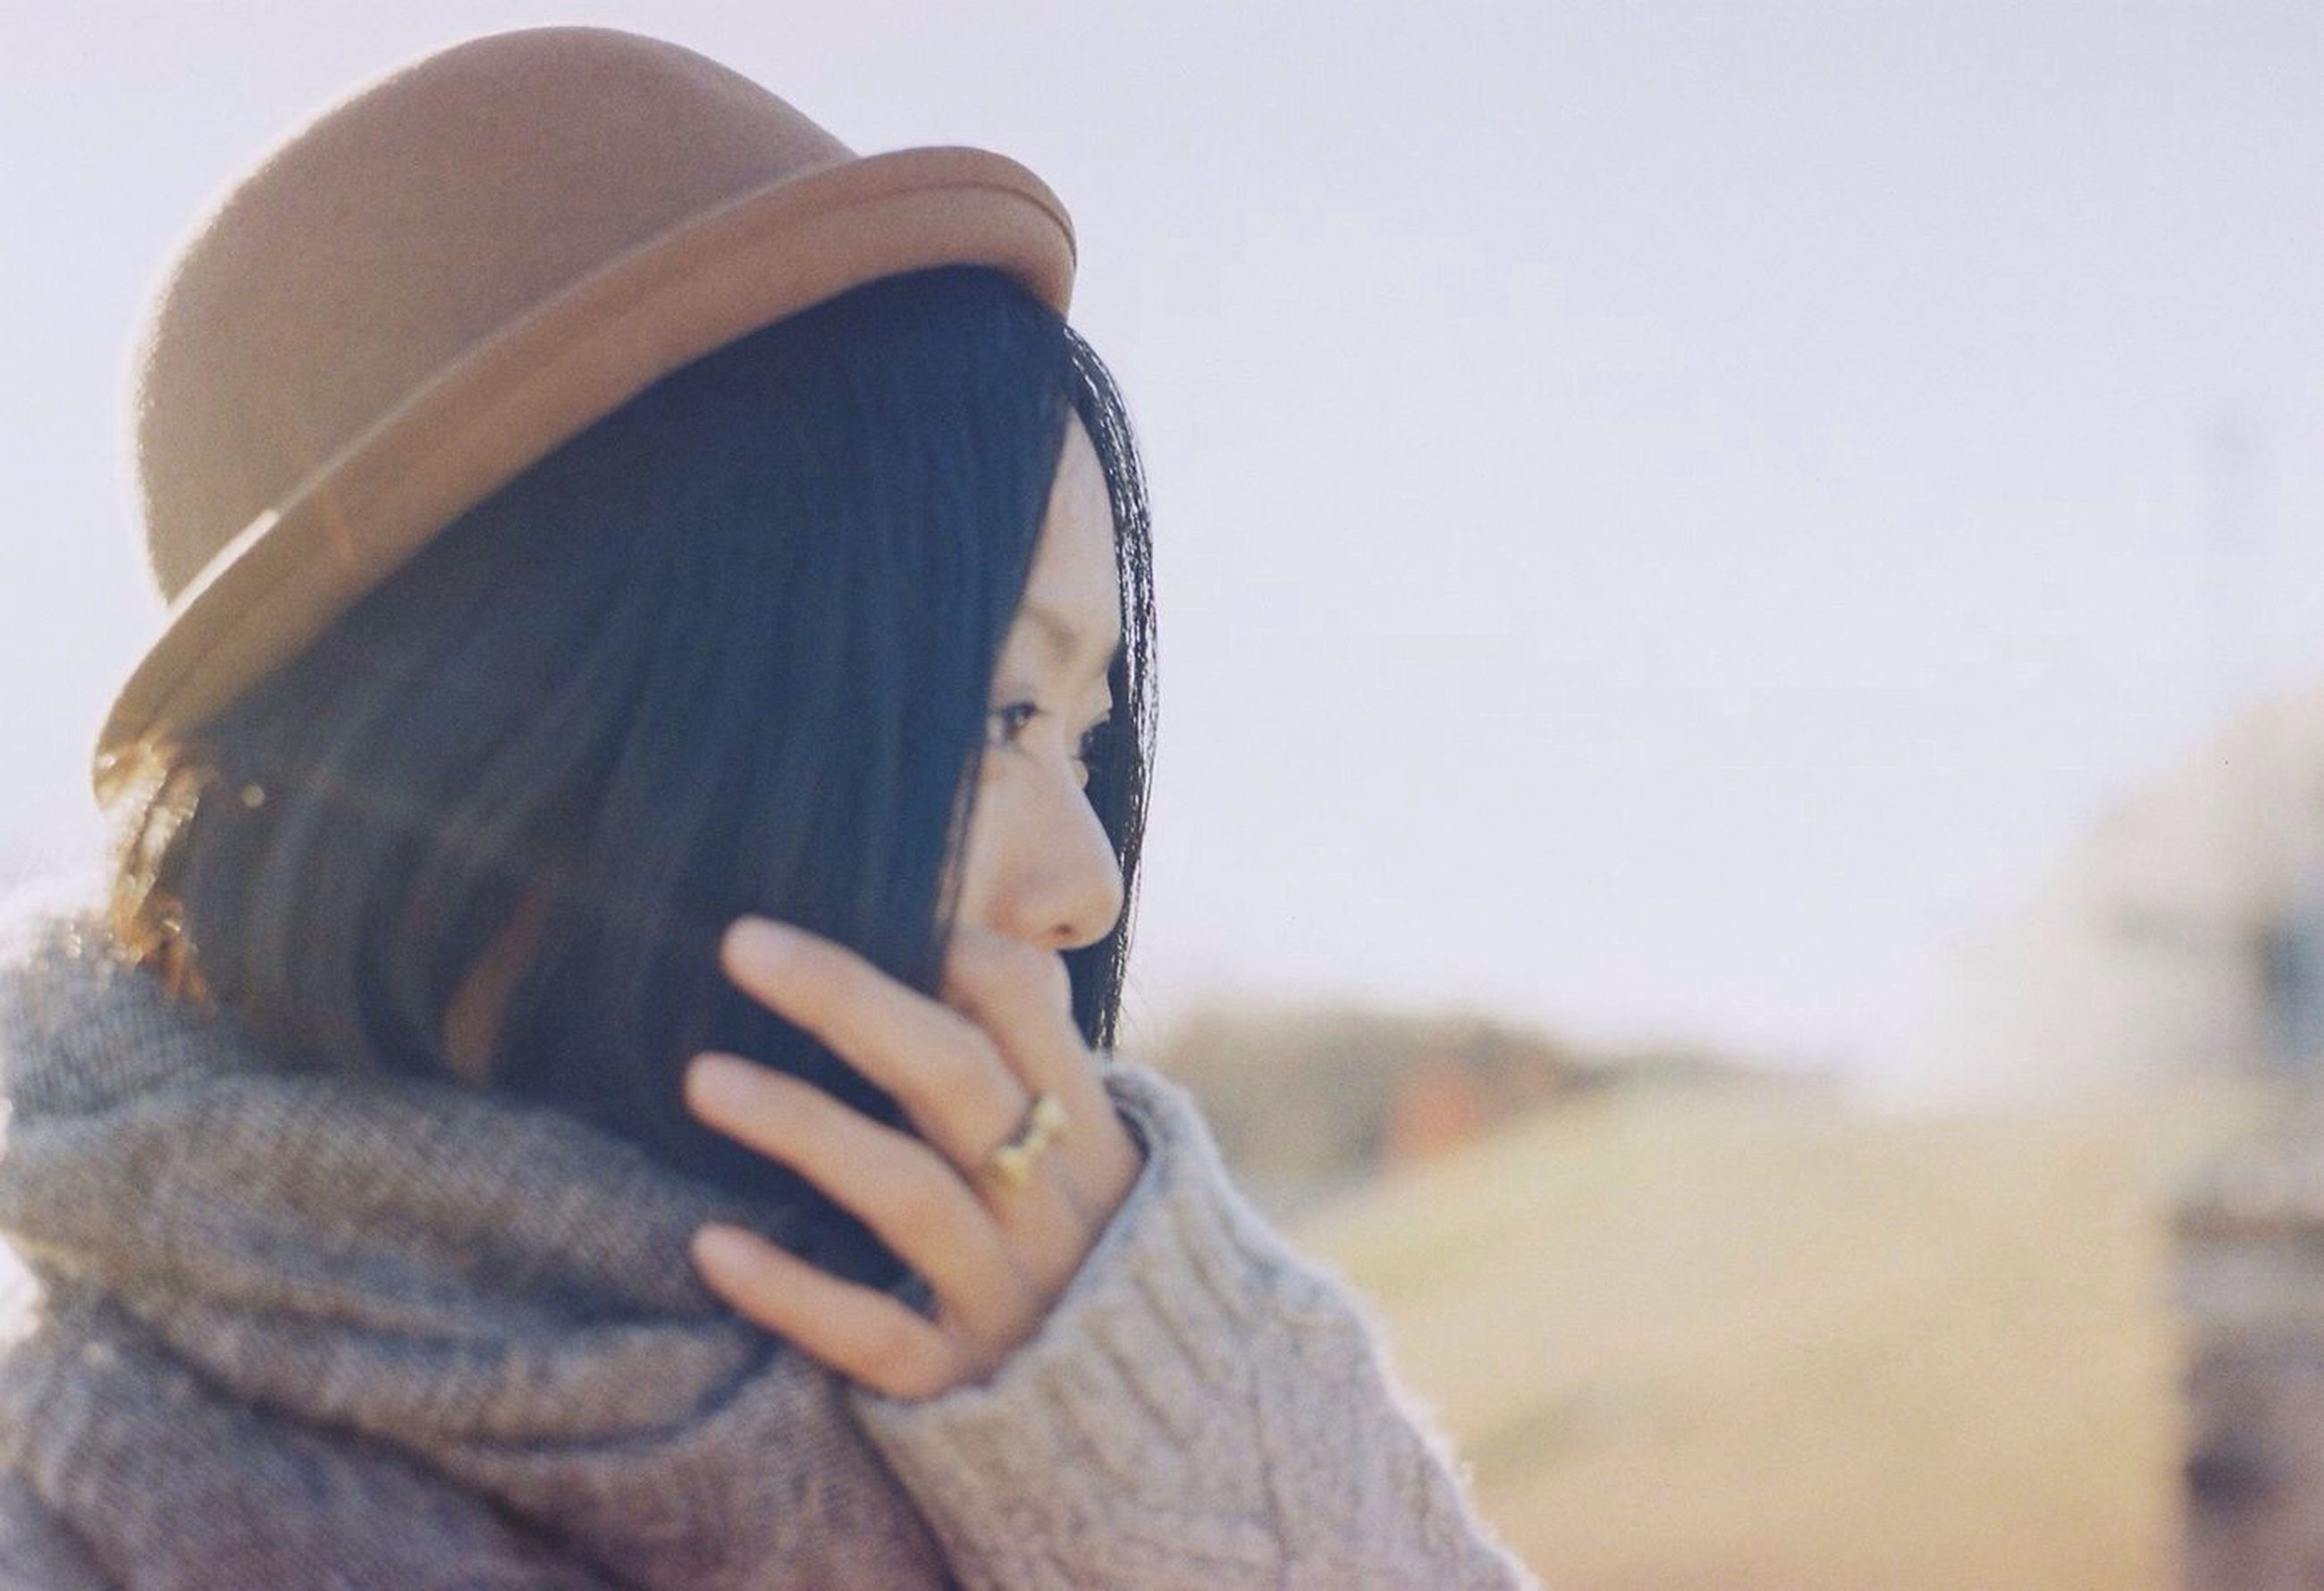 lifestyles, leisure activity, focus on foreground, holding, headshot, men, clear sky, person, close-up, cropped, part of, sky, outdoors, day, waist up, hat, unrecognizable person